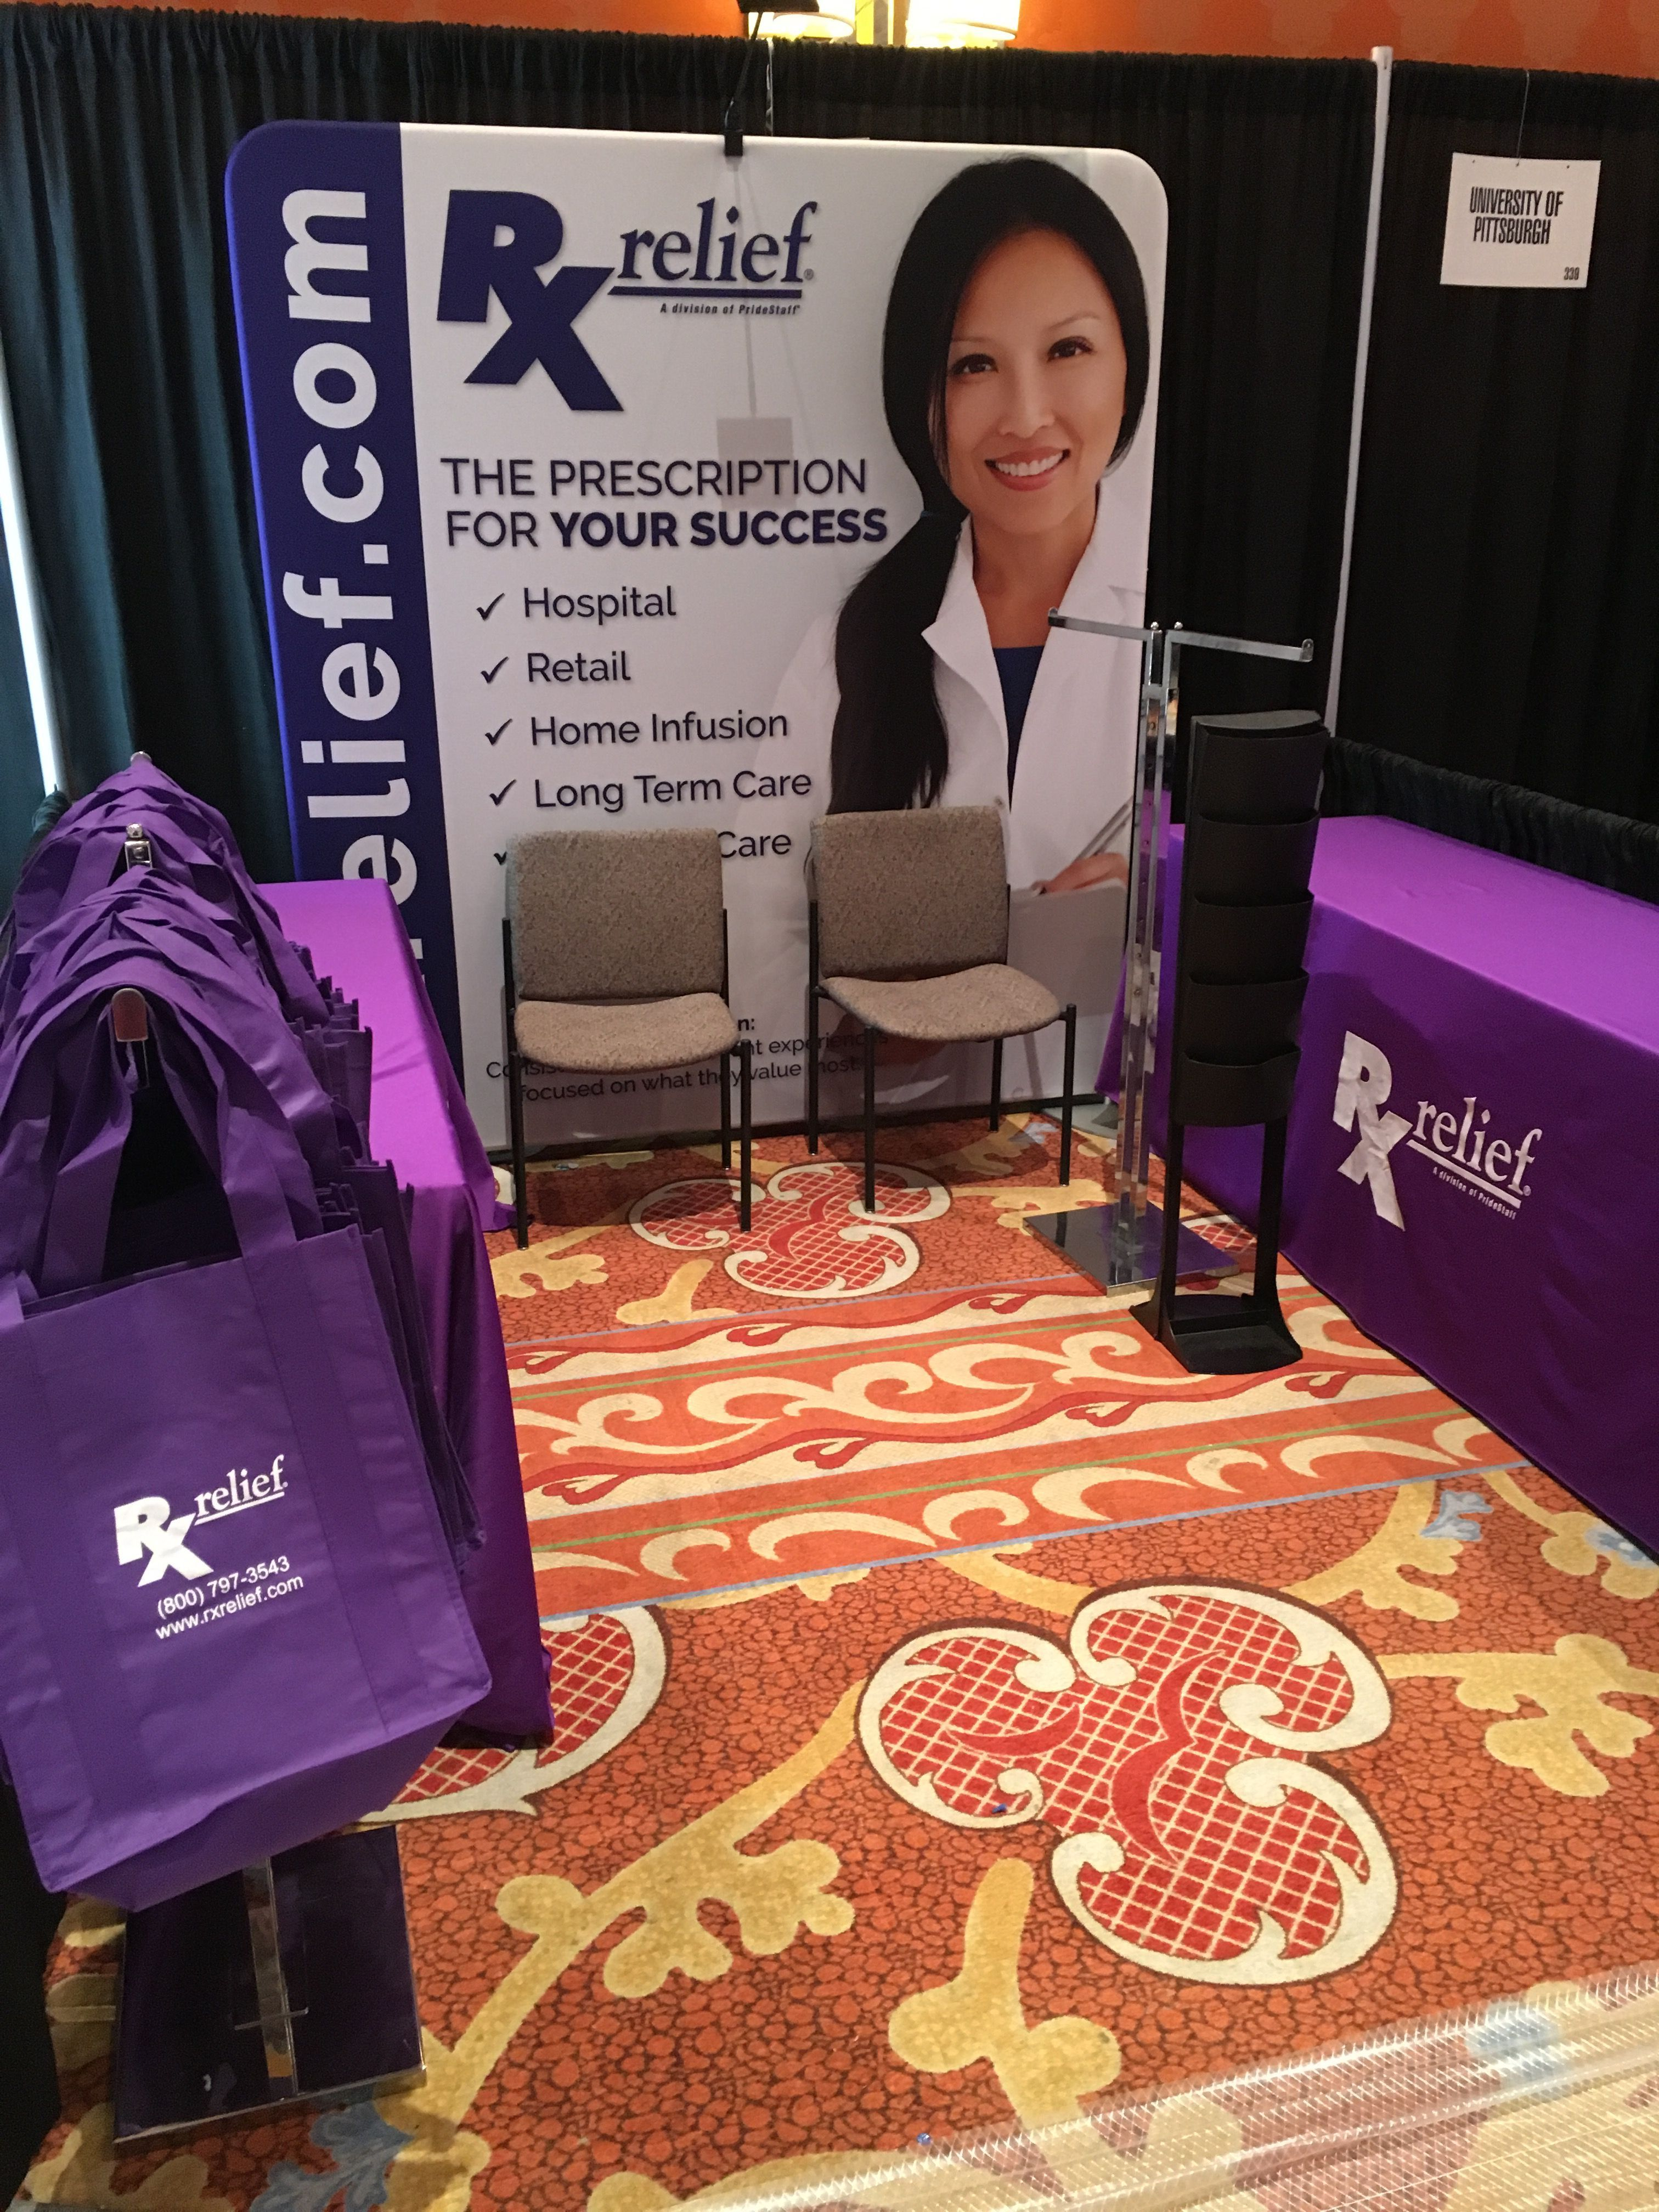 Rx relief asembias annual specialty pharmacy summit